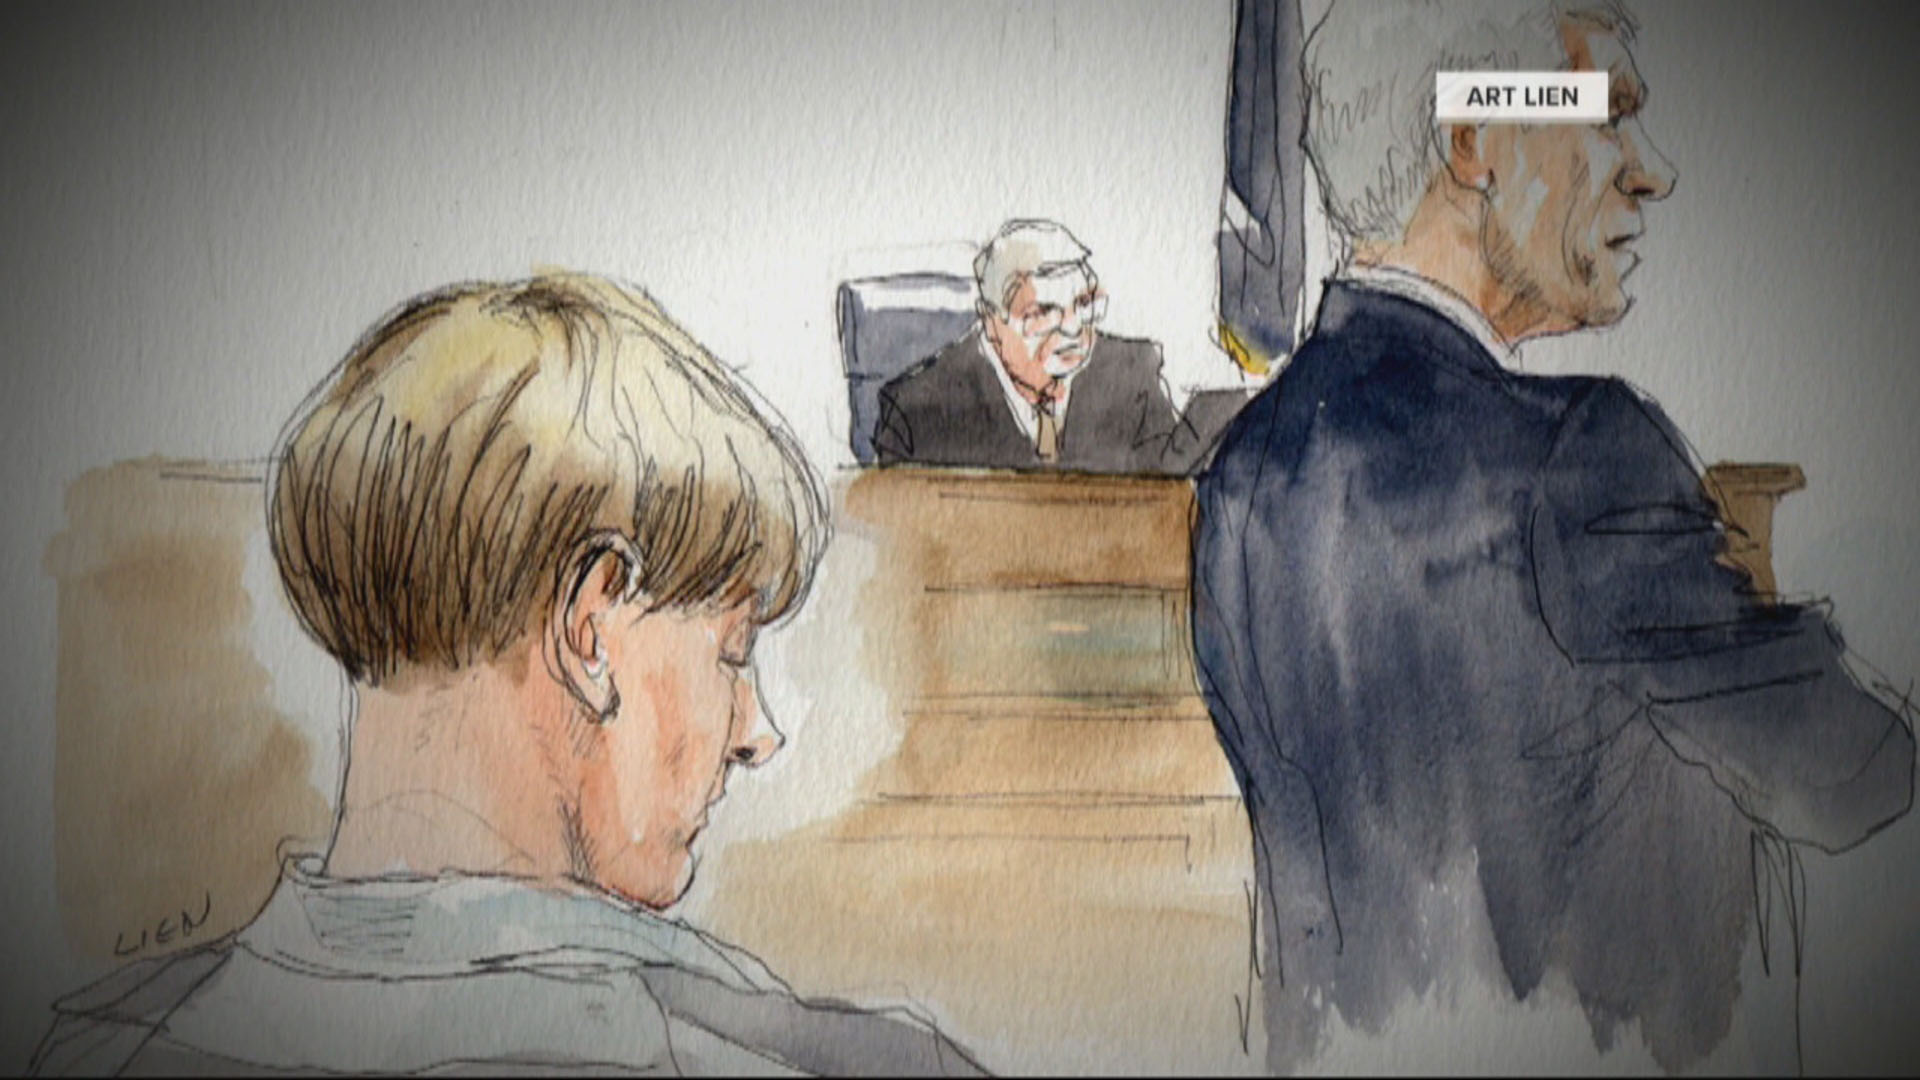 Roof's confession to church shooting came fast